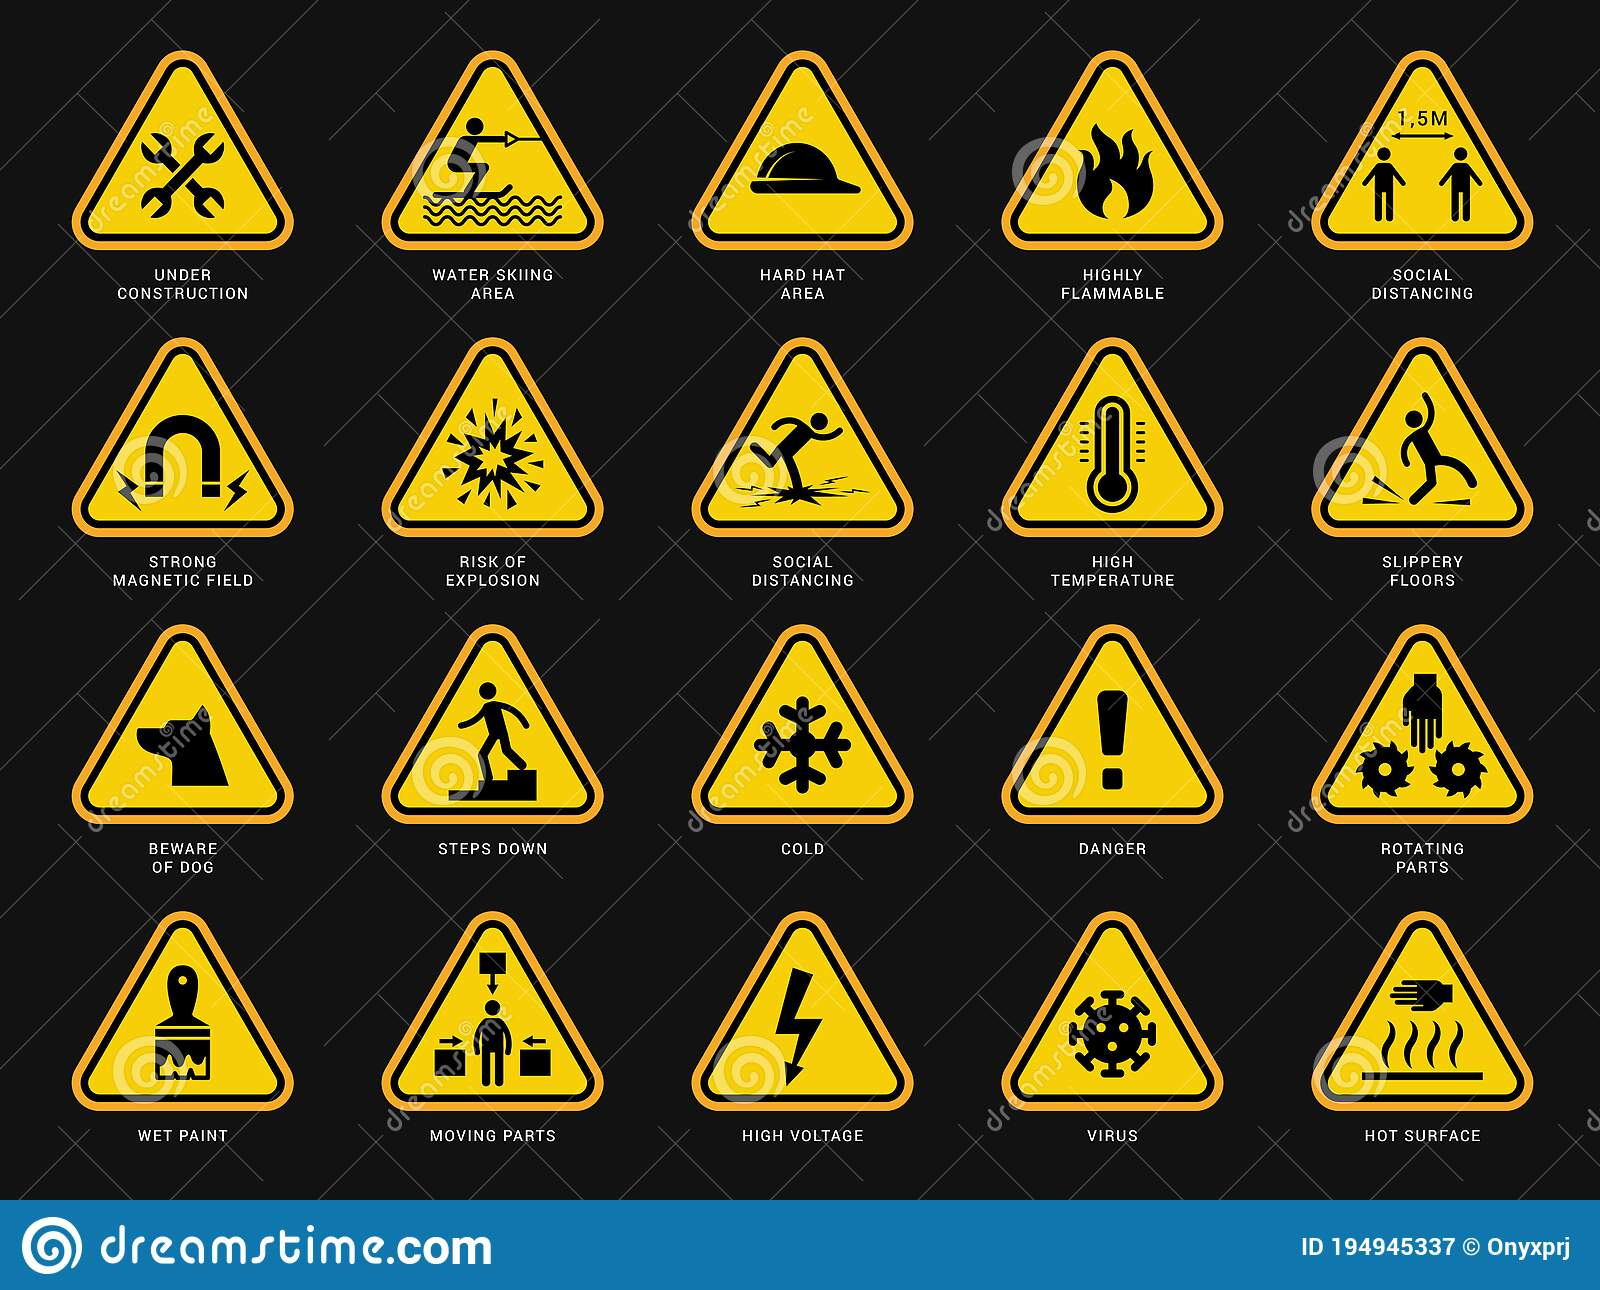 Electrical Warning Signs Stock Illustrations – 10 Electrical ...